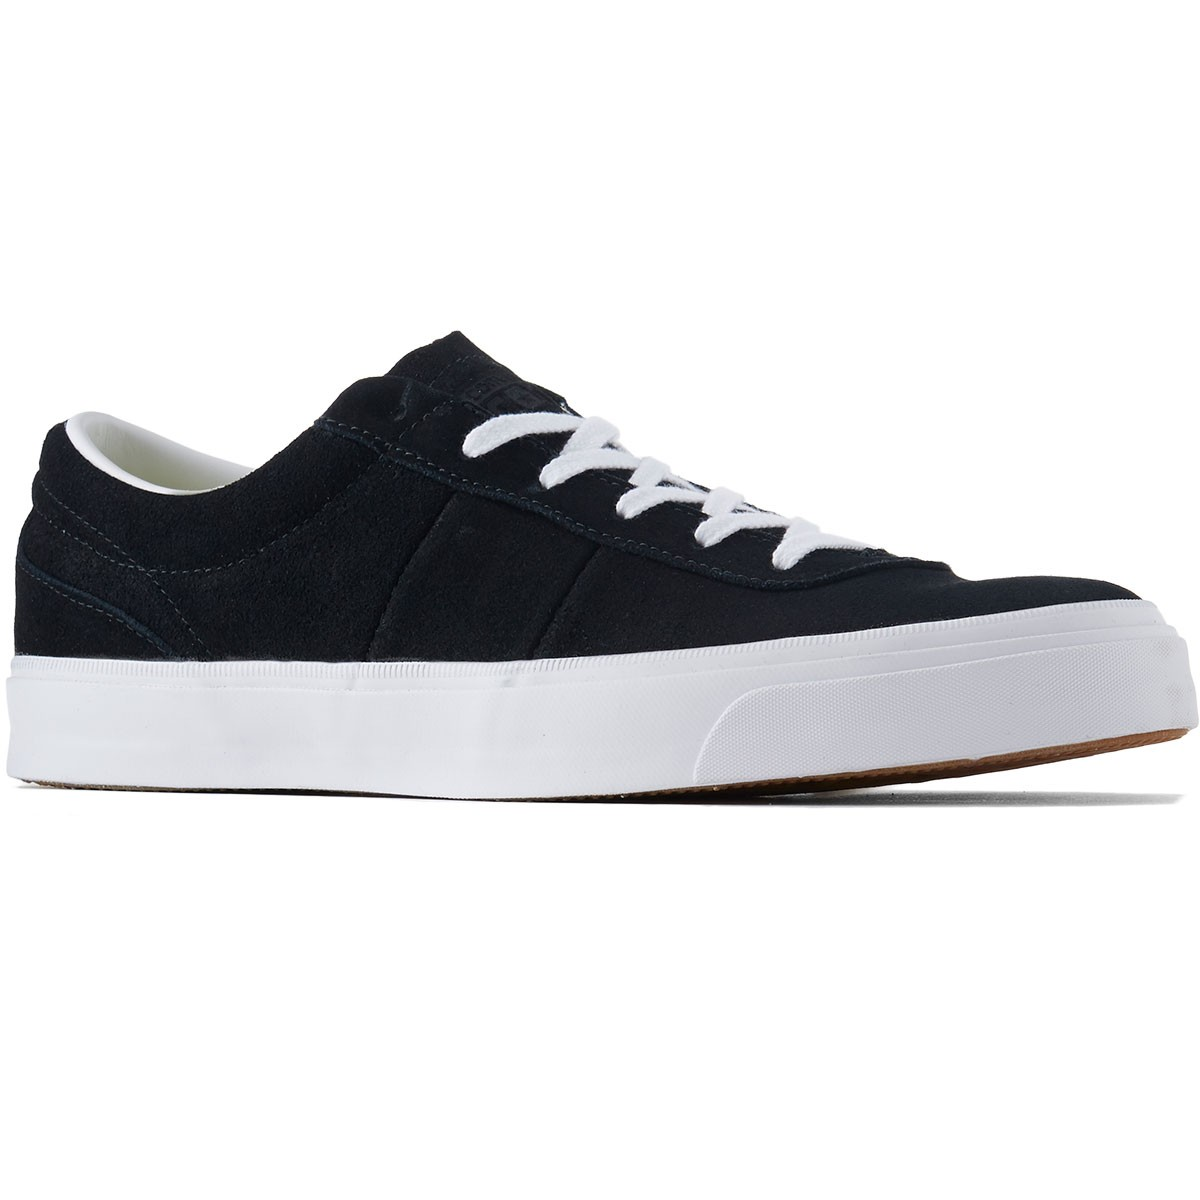 6ce79112a104f3 Converse One Star CC Pro OX Suede Shoes - Black White White - 8.0